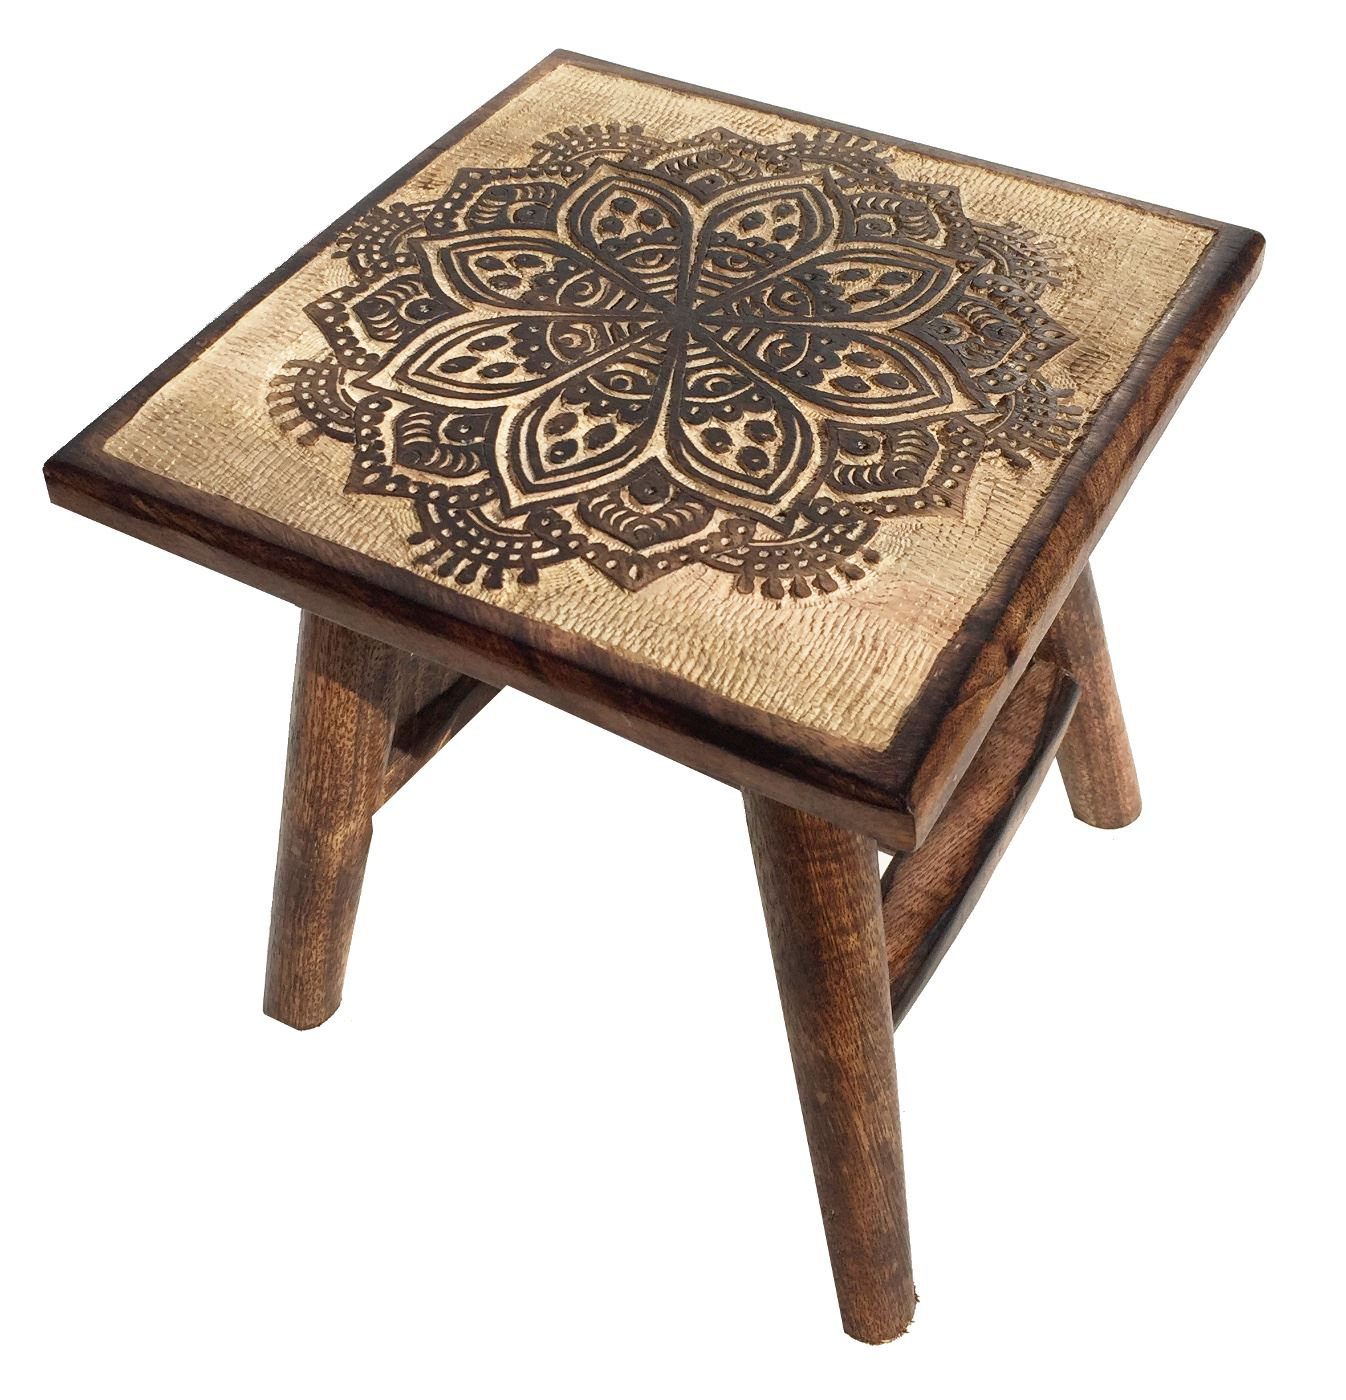 25cm brown hancarved mango wood square wooden stool coffee. Black Bedroom Furniture Sets. Home Design Ideas